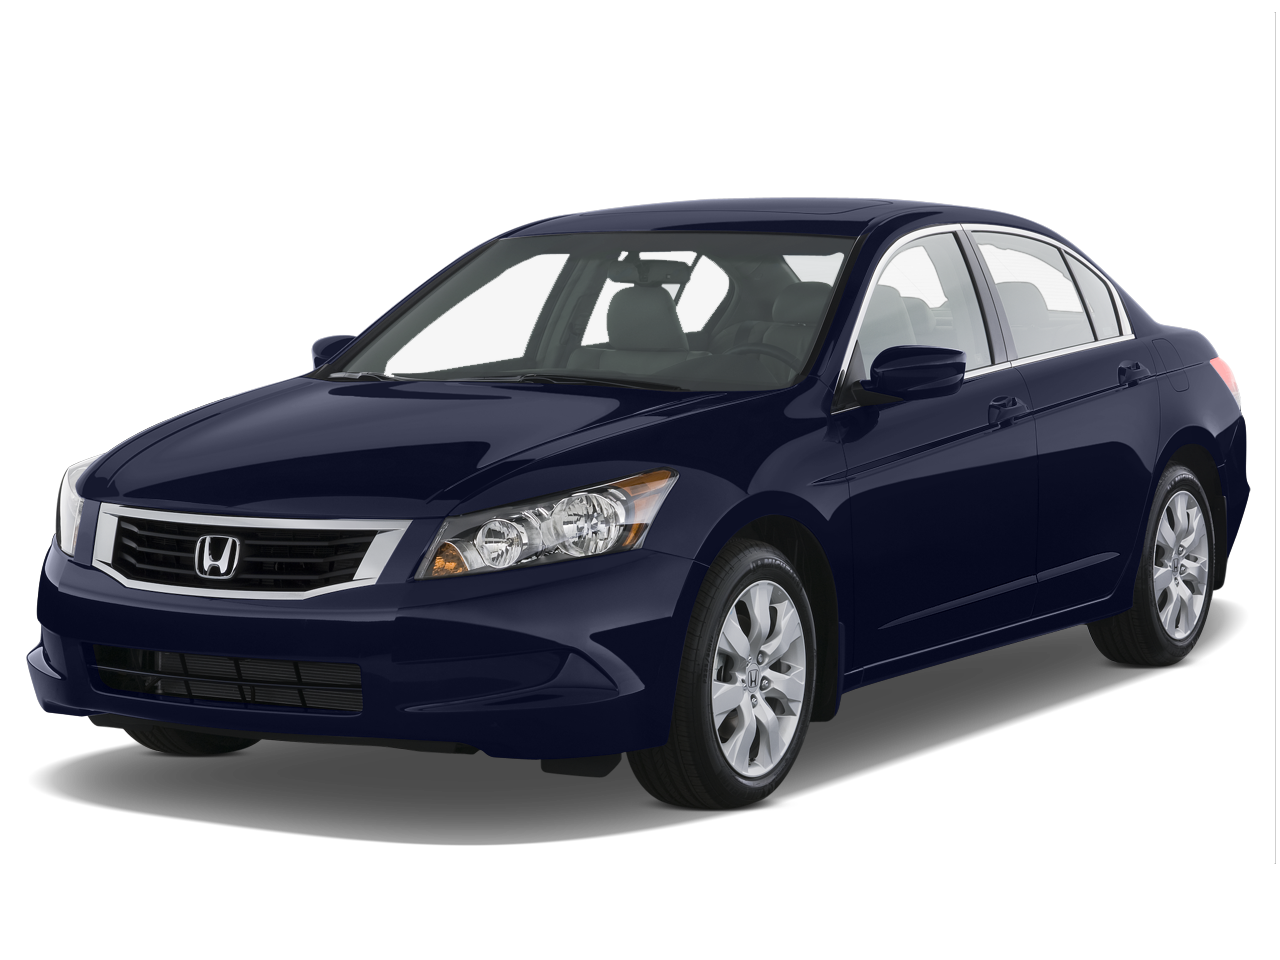 2010 honda accord ex l v 6 coupe editor 39 s notebook. Black Bedroom Furniture Sets. Home Design Ideas